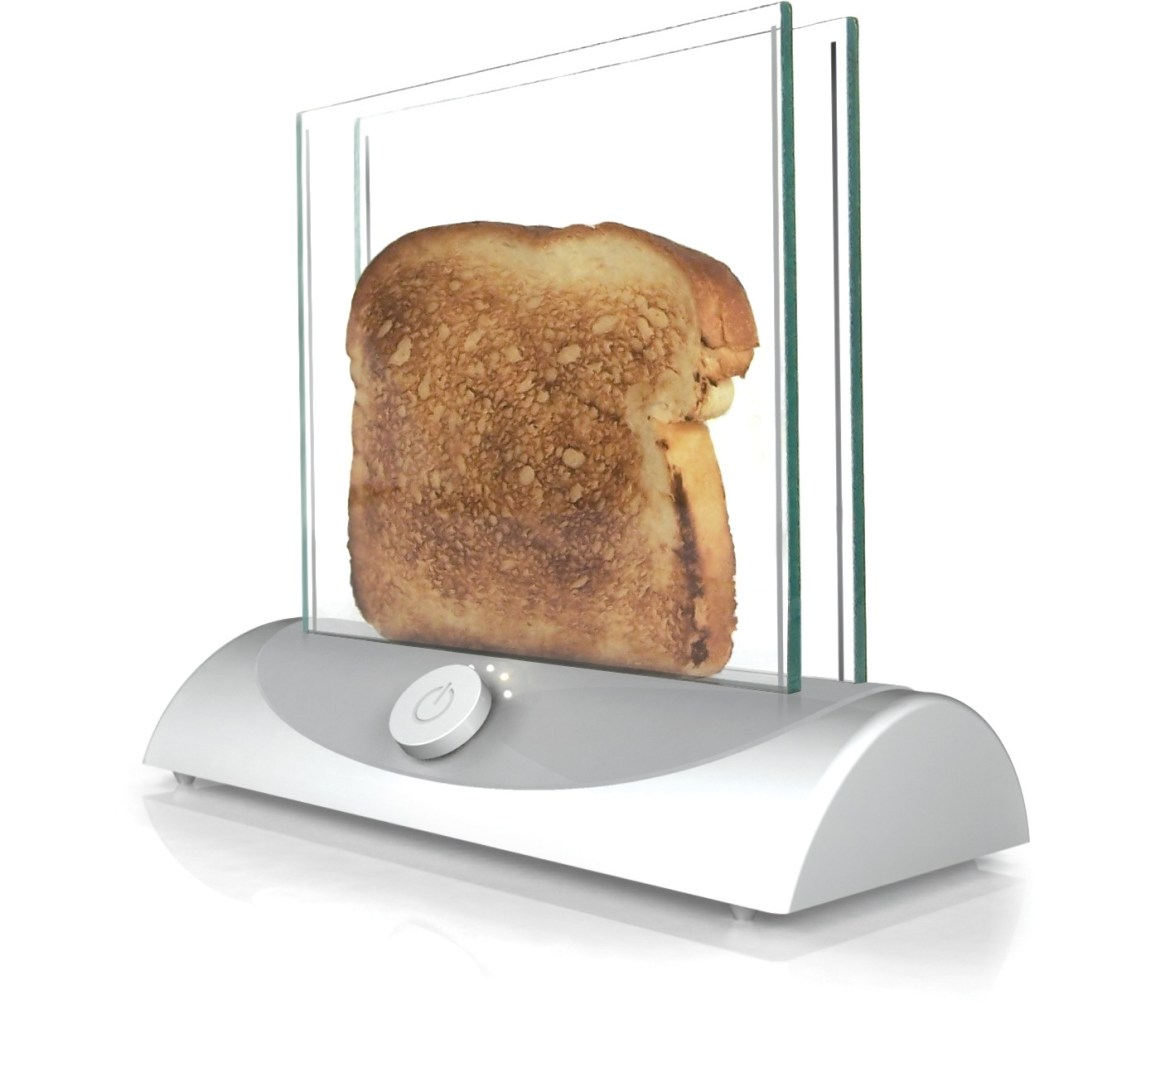 Transport toaster